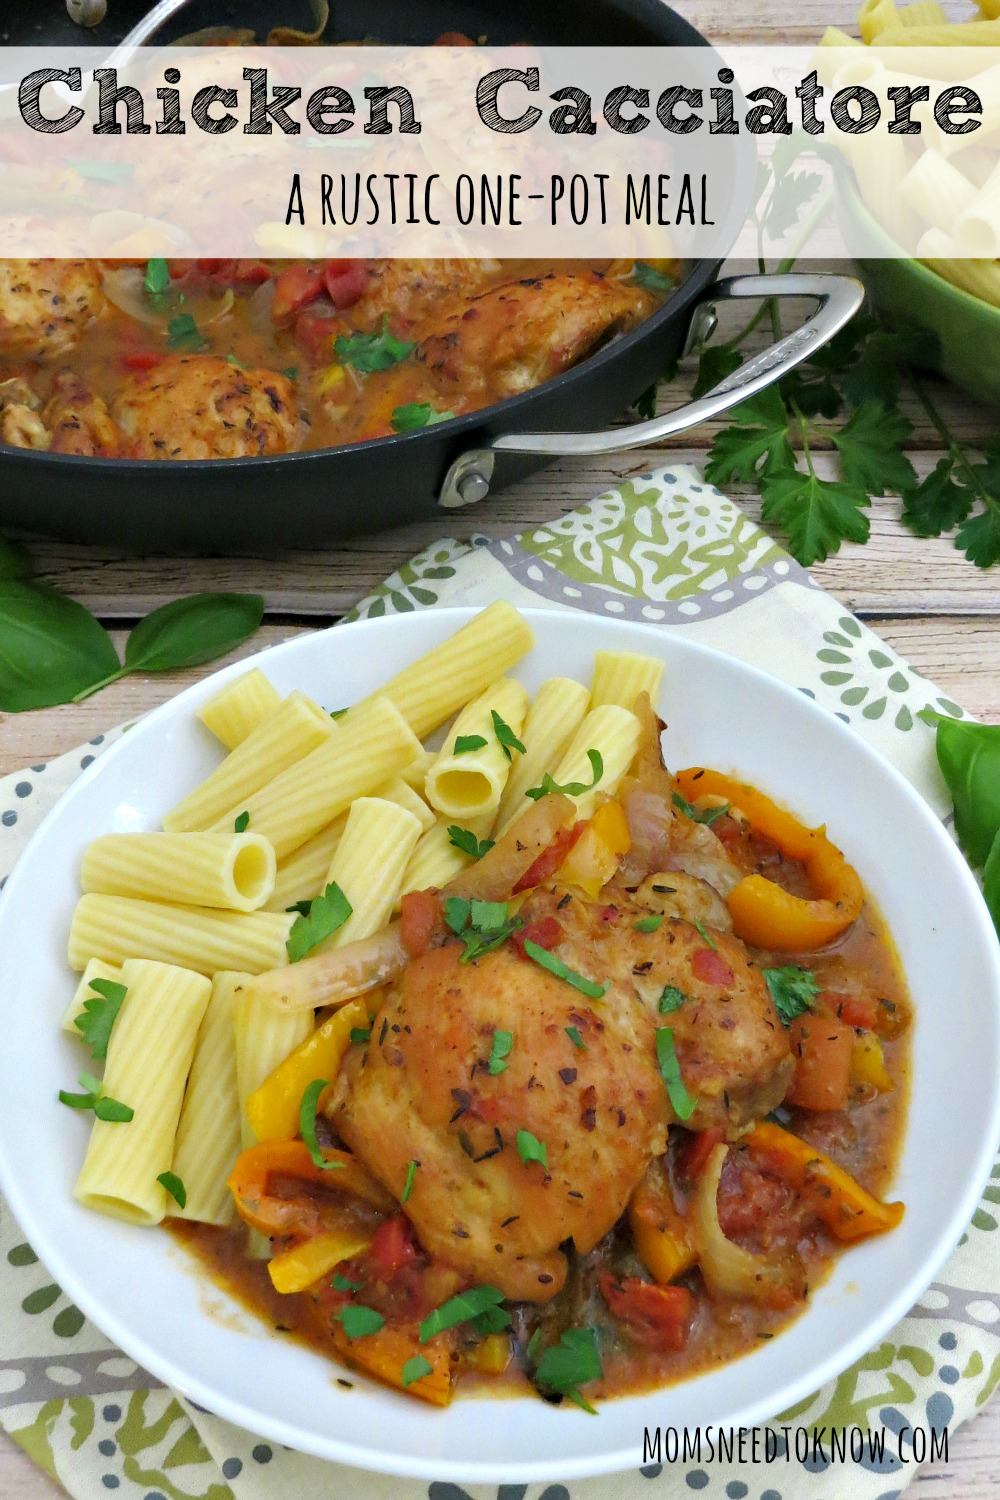 Chicken cacciatore recipe moms need to know chicken cacciatore is a one pot rustic dish thats comforting and absolutely delicious forumfinder Gallery